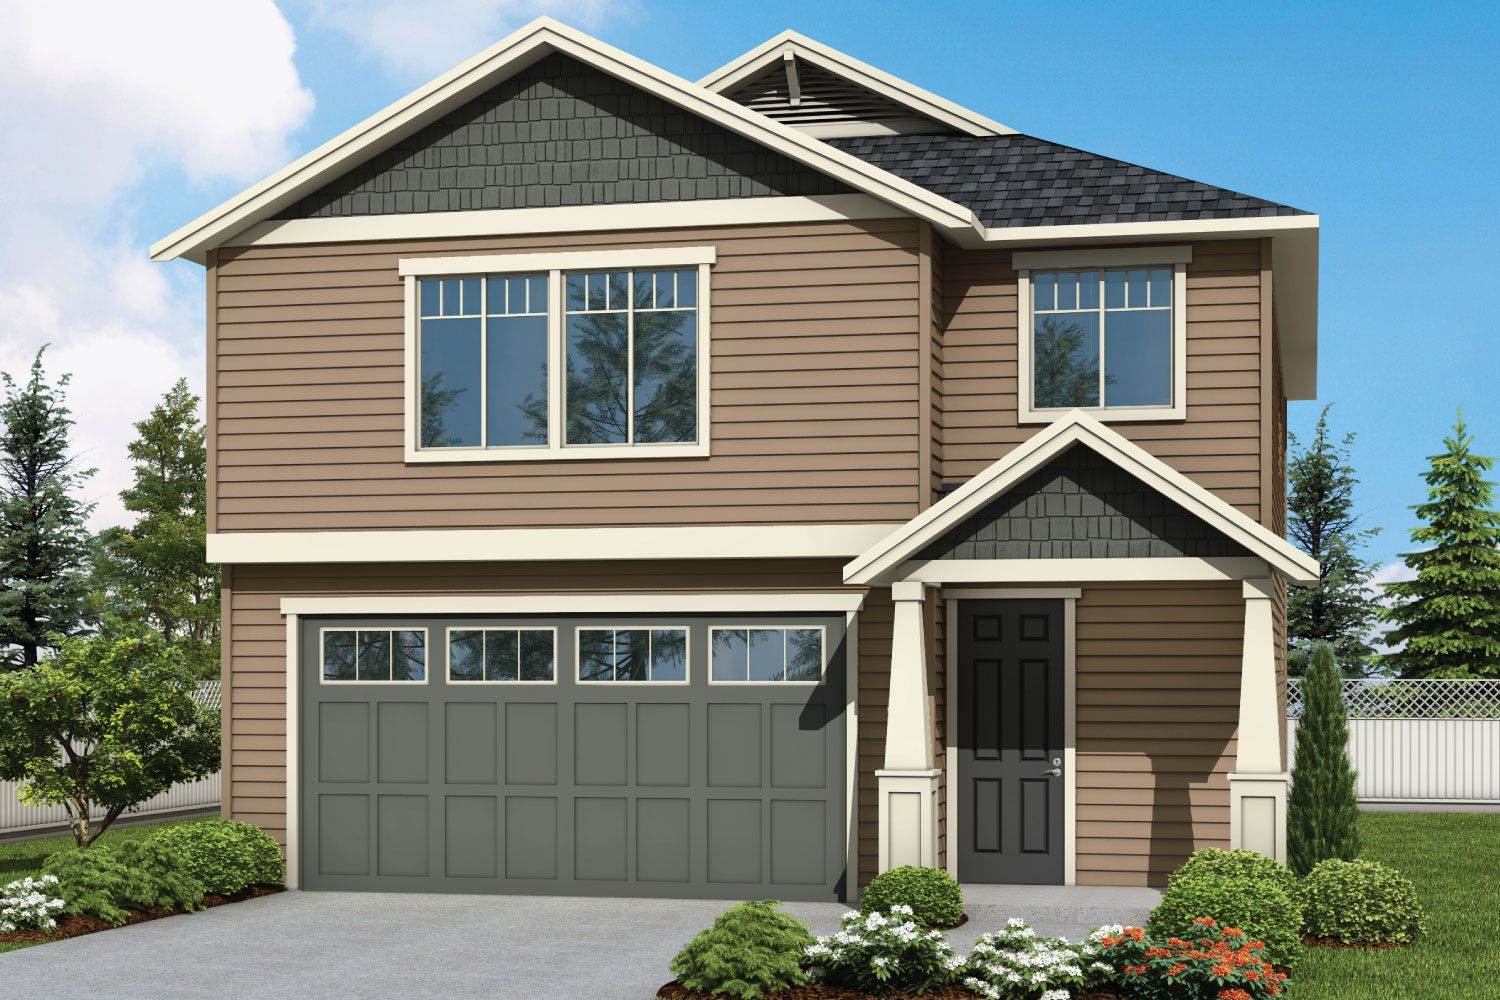 Plan 2196 Elevation 2 Rendering by Aho Construction:Plan 2196 Elevation 2